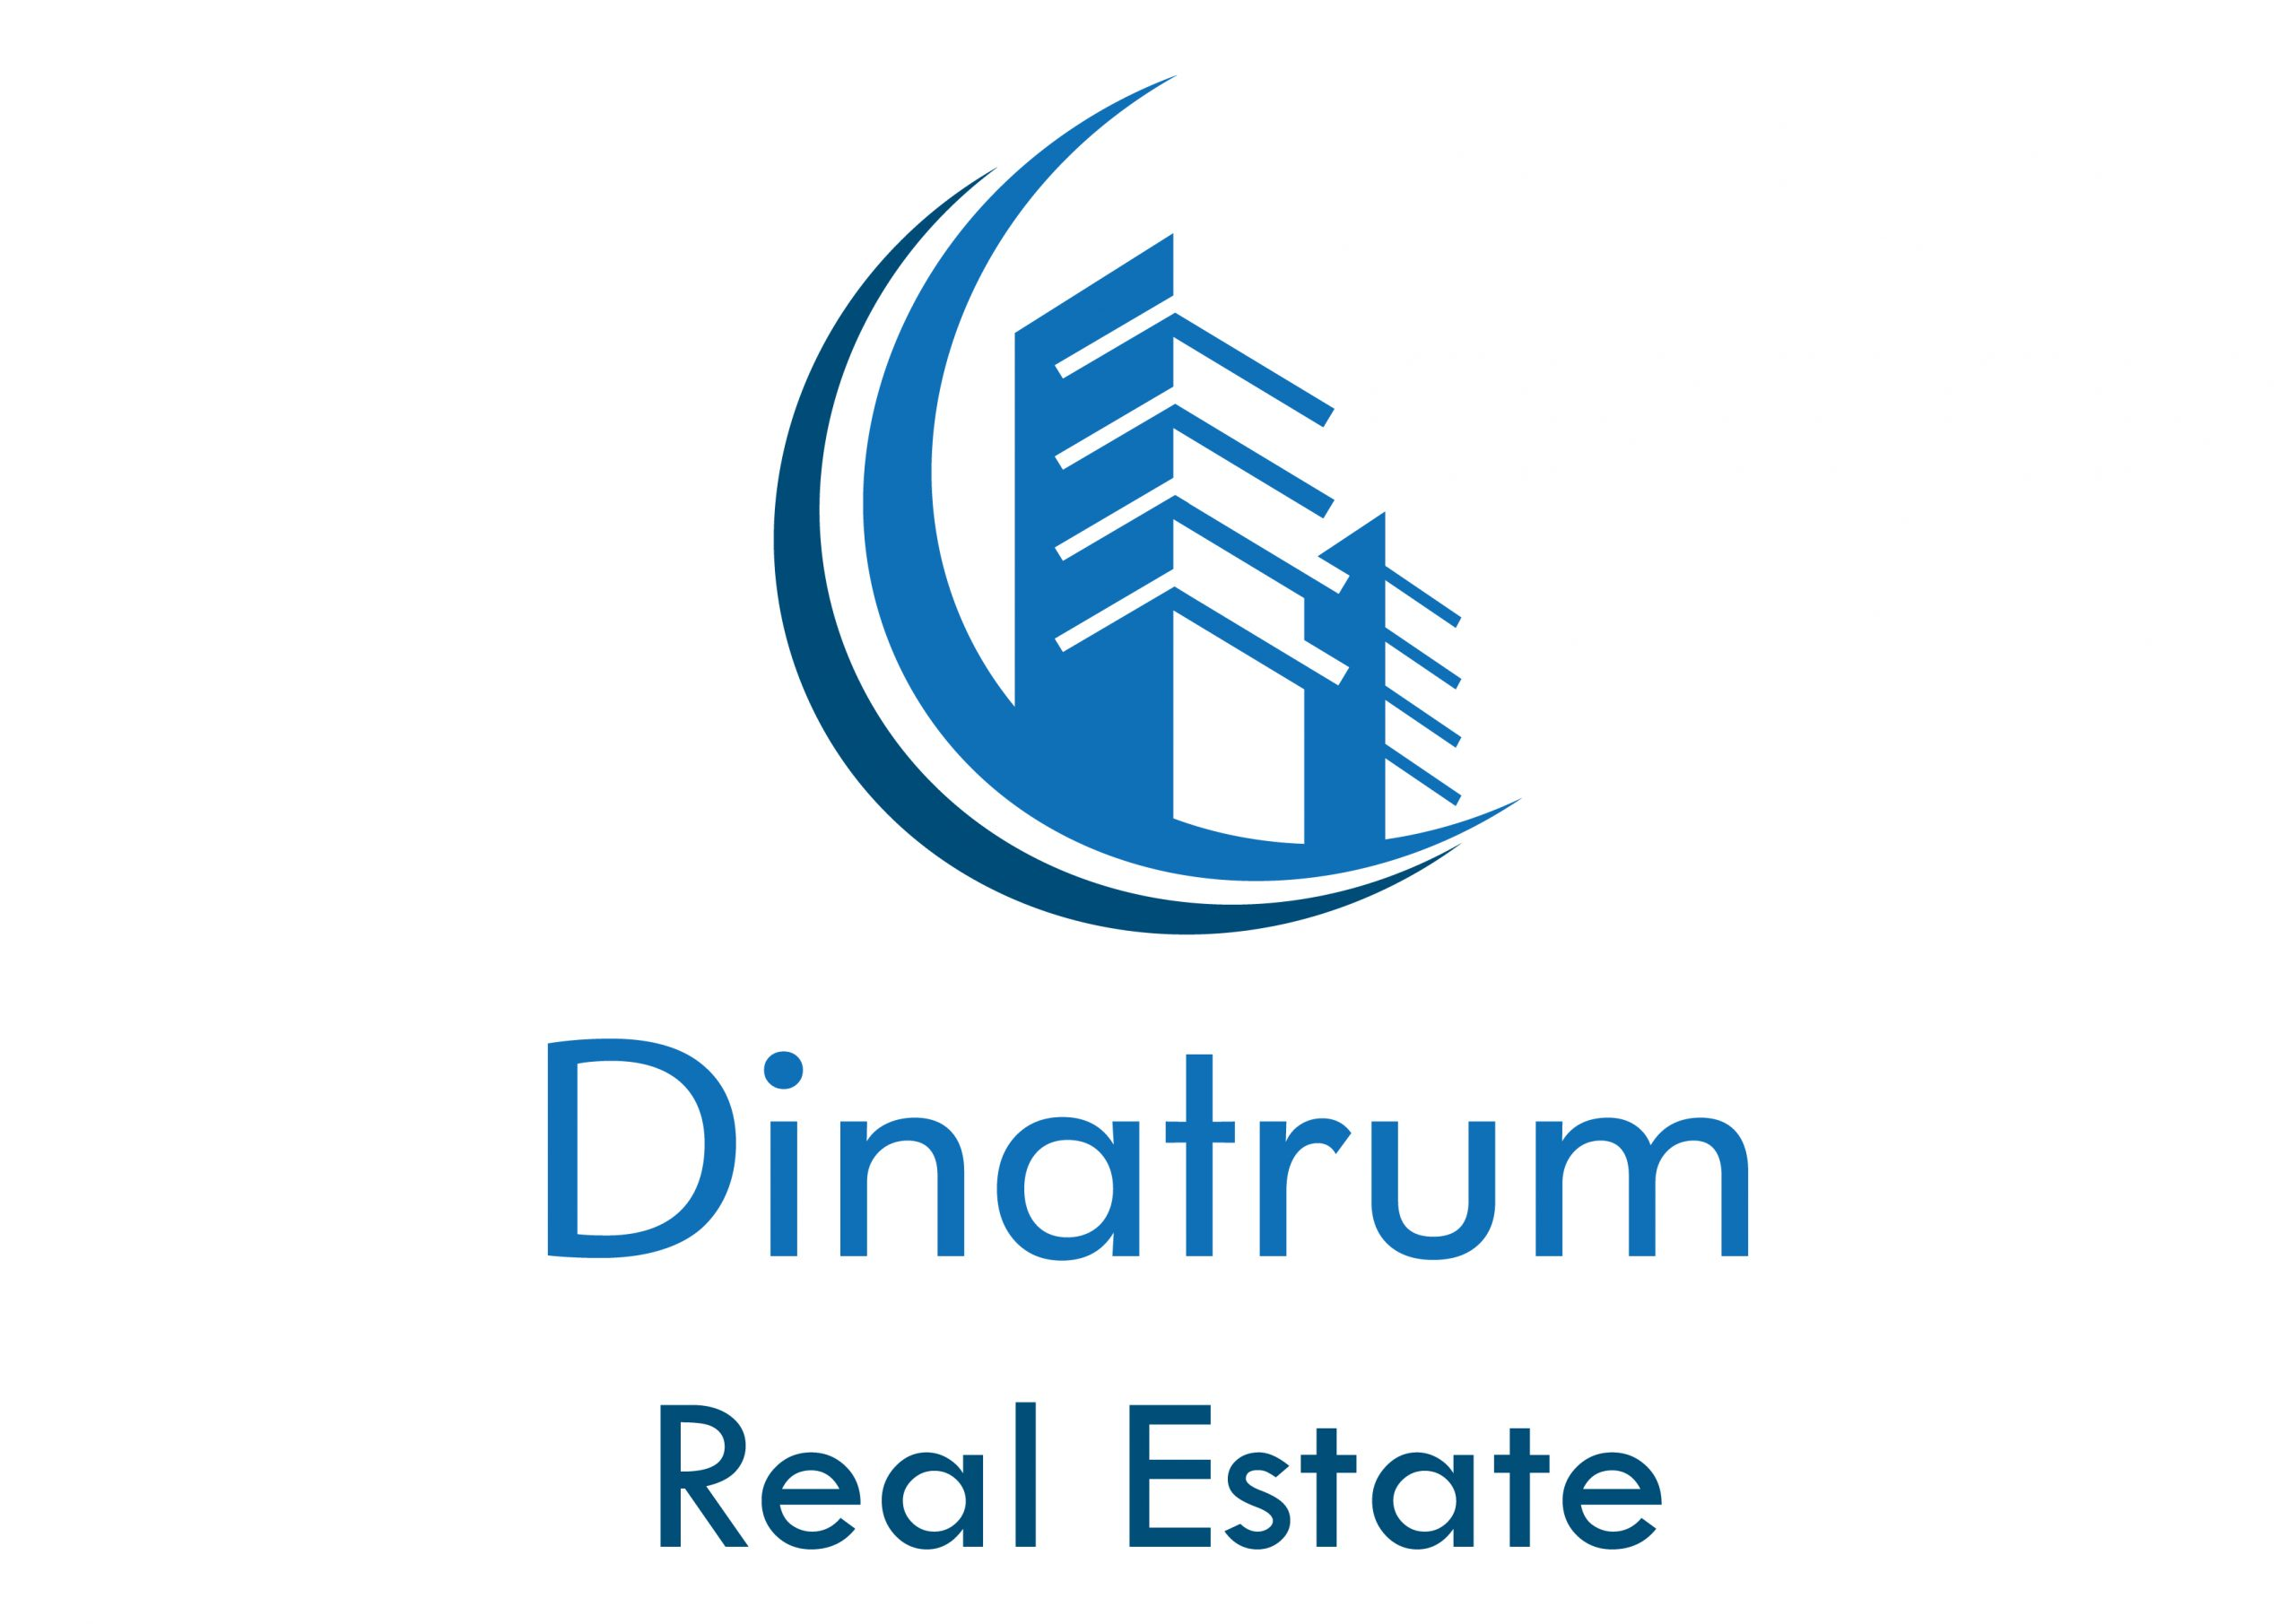 Dinatrum Real Estate